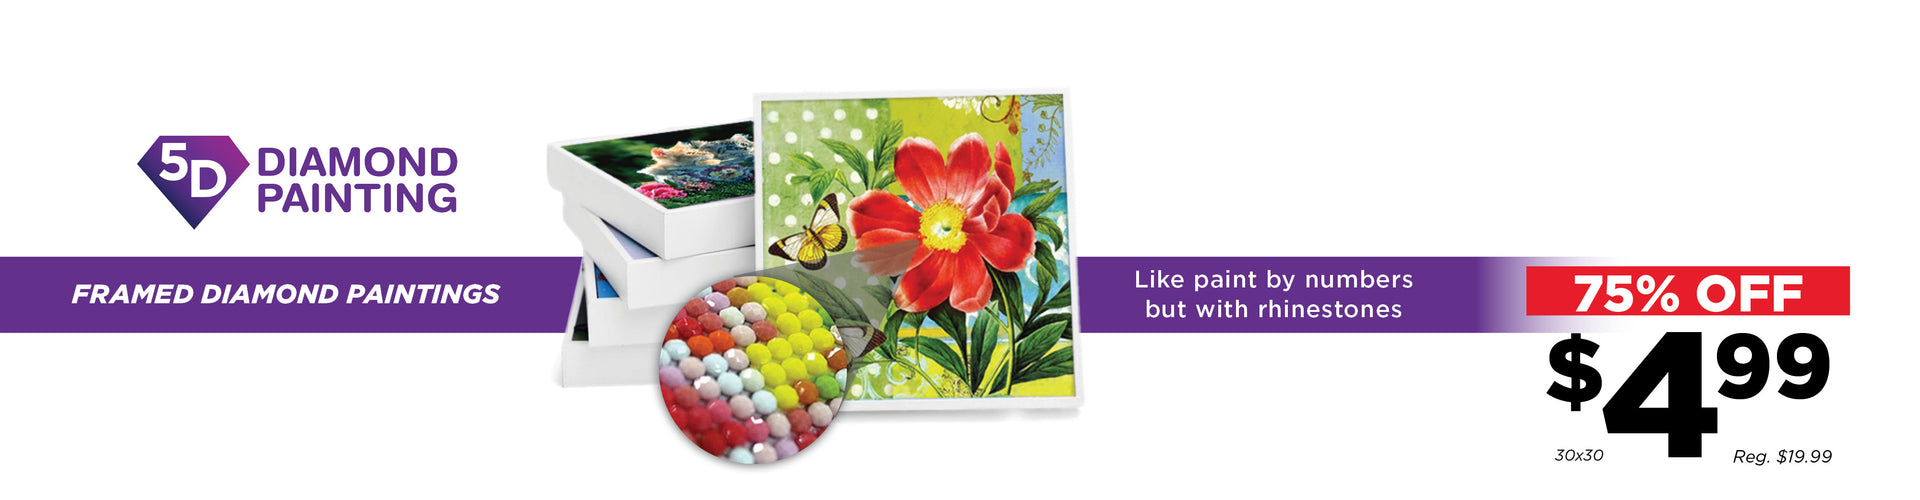 Save 75% Off Select 5D Diamond Paintings!